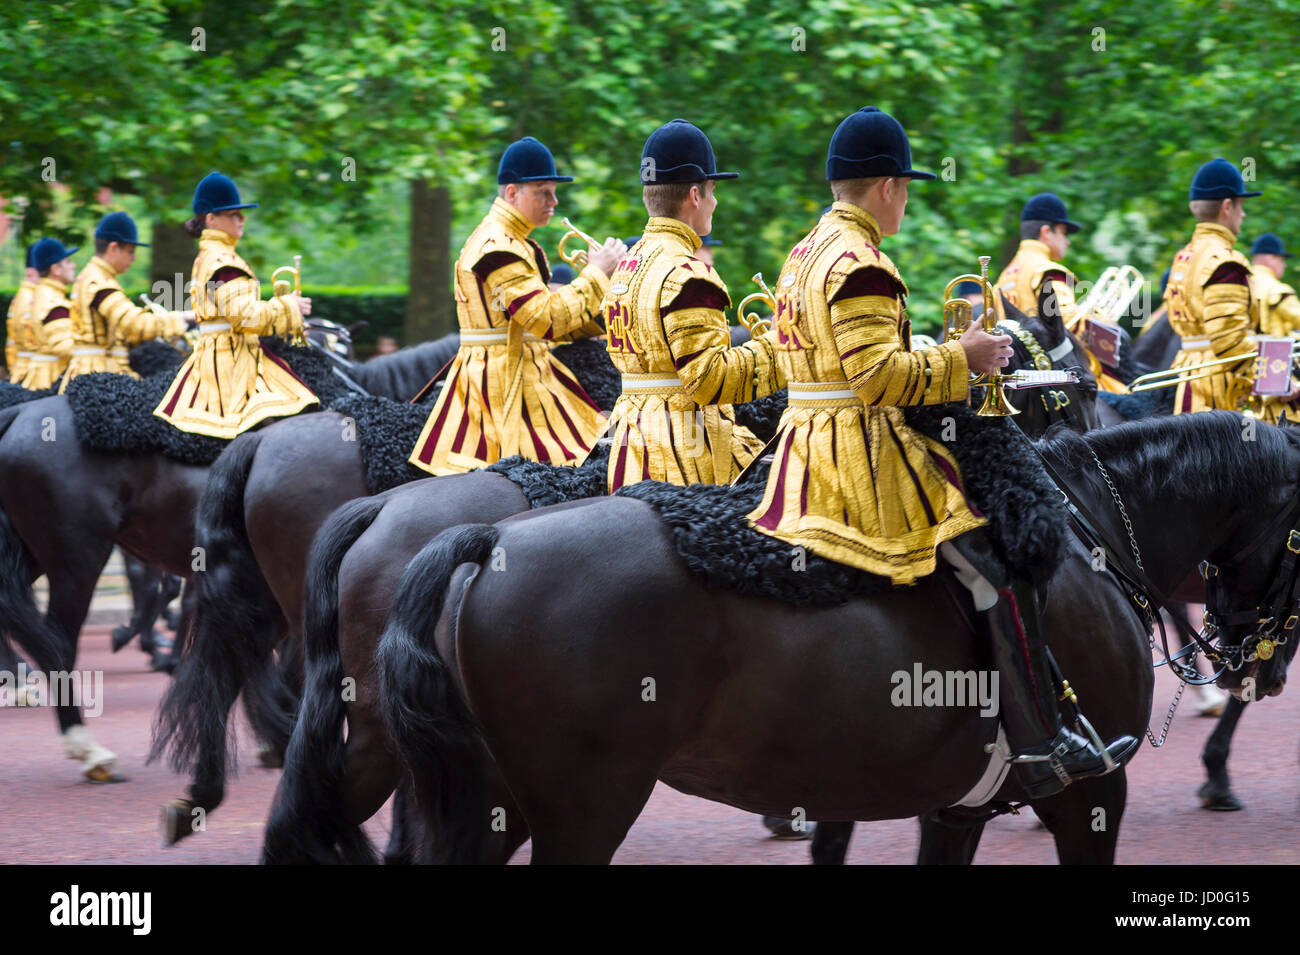 LONDON, UK - JUNE 13, 2015: Mounted military band parade in formation down The Mall in a royal Trooping the Colour - Stock Image